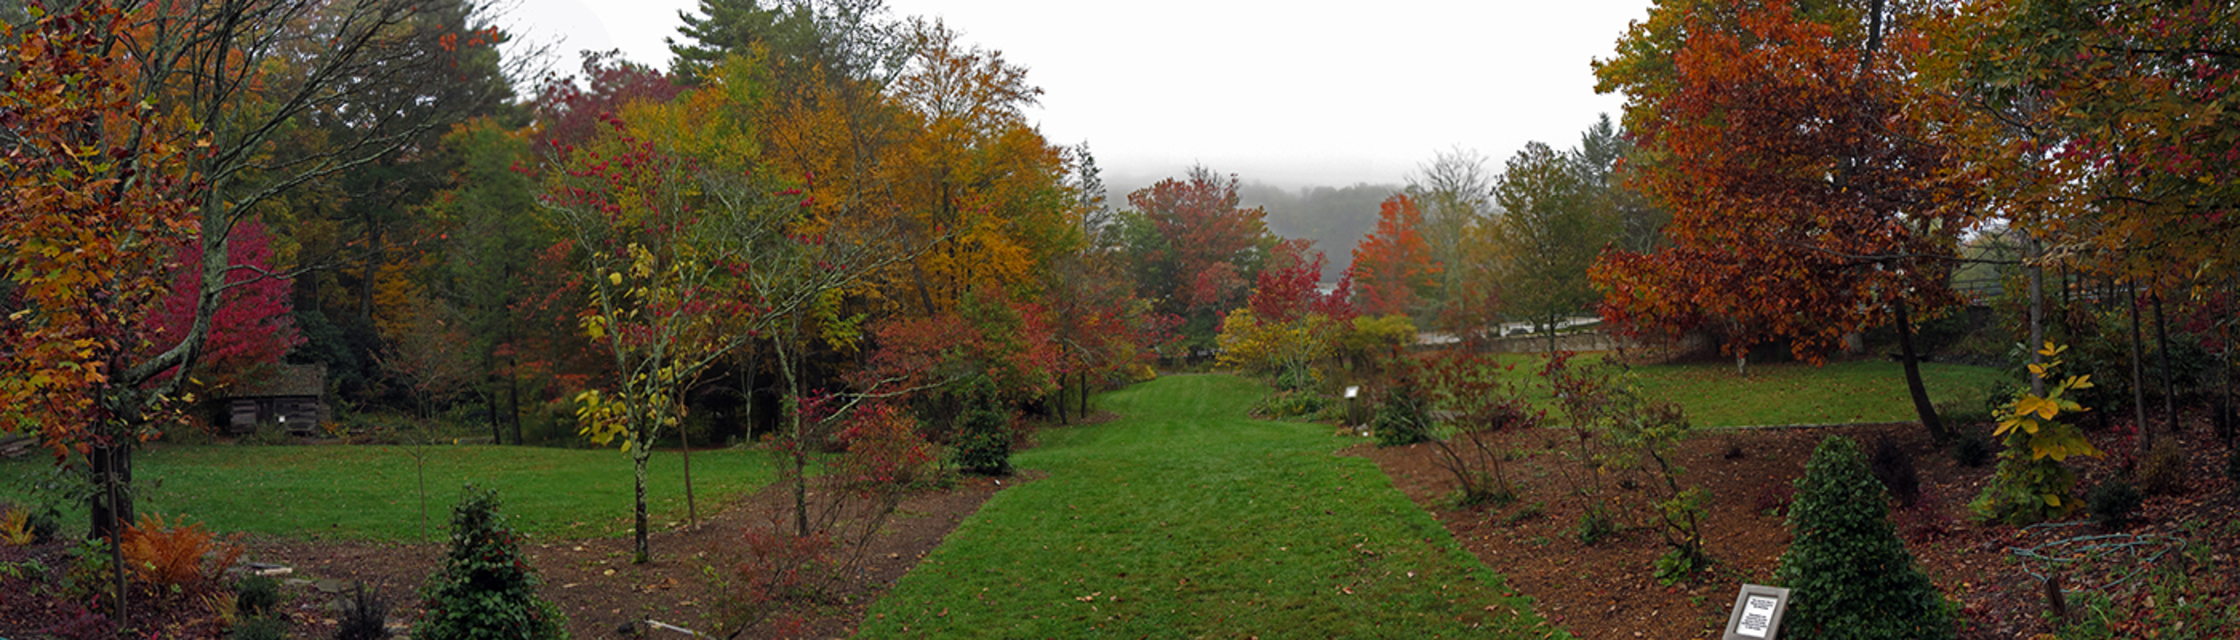 Allee by Daniel Boone Native Gardens | Plants Map